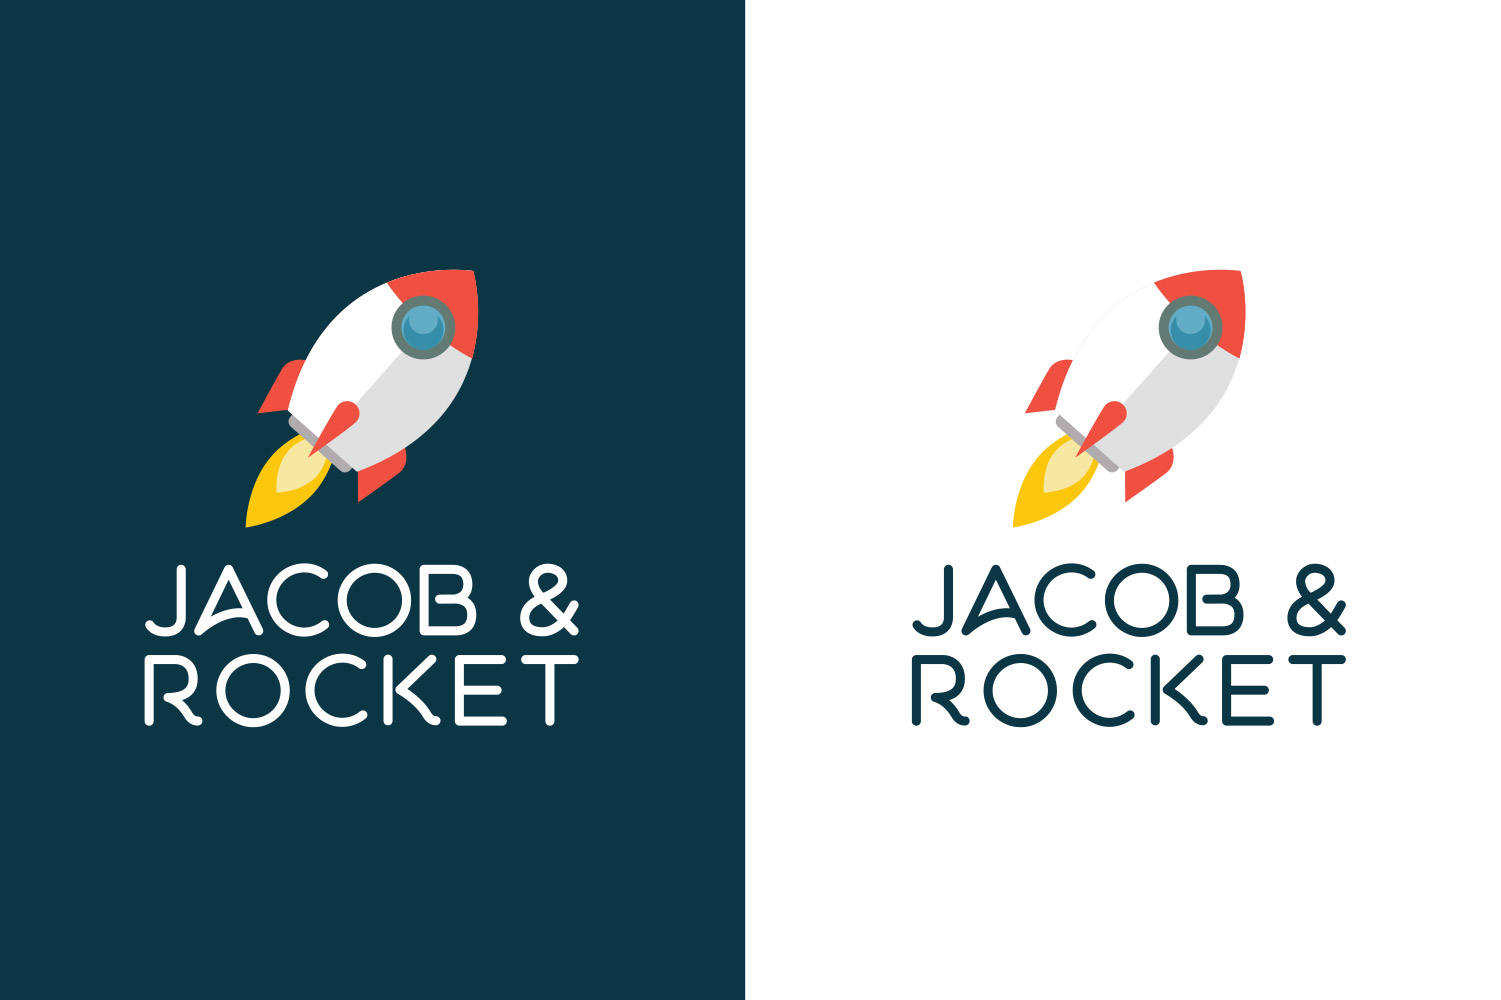 Jacob & Rocket, logo design image